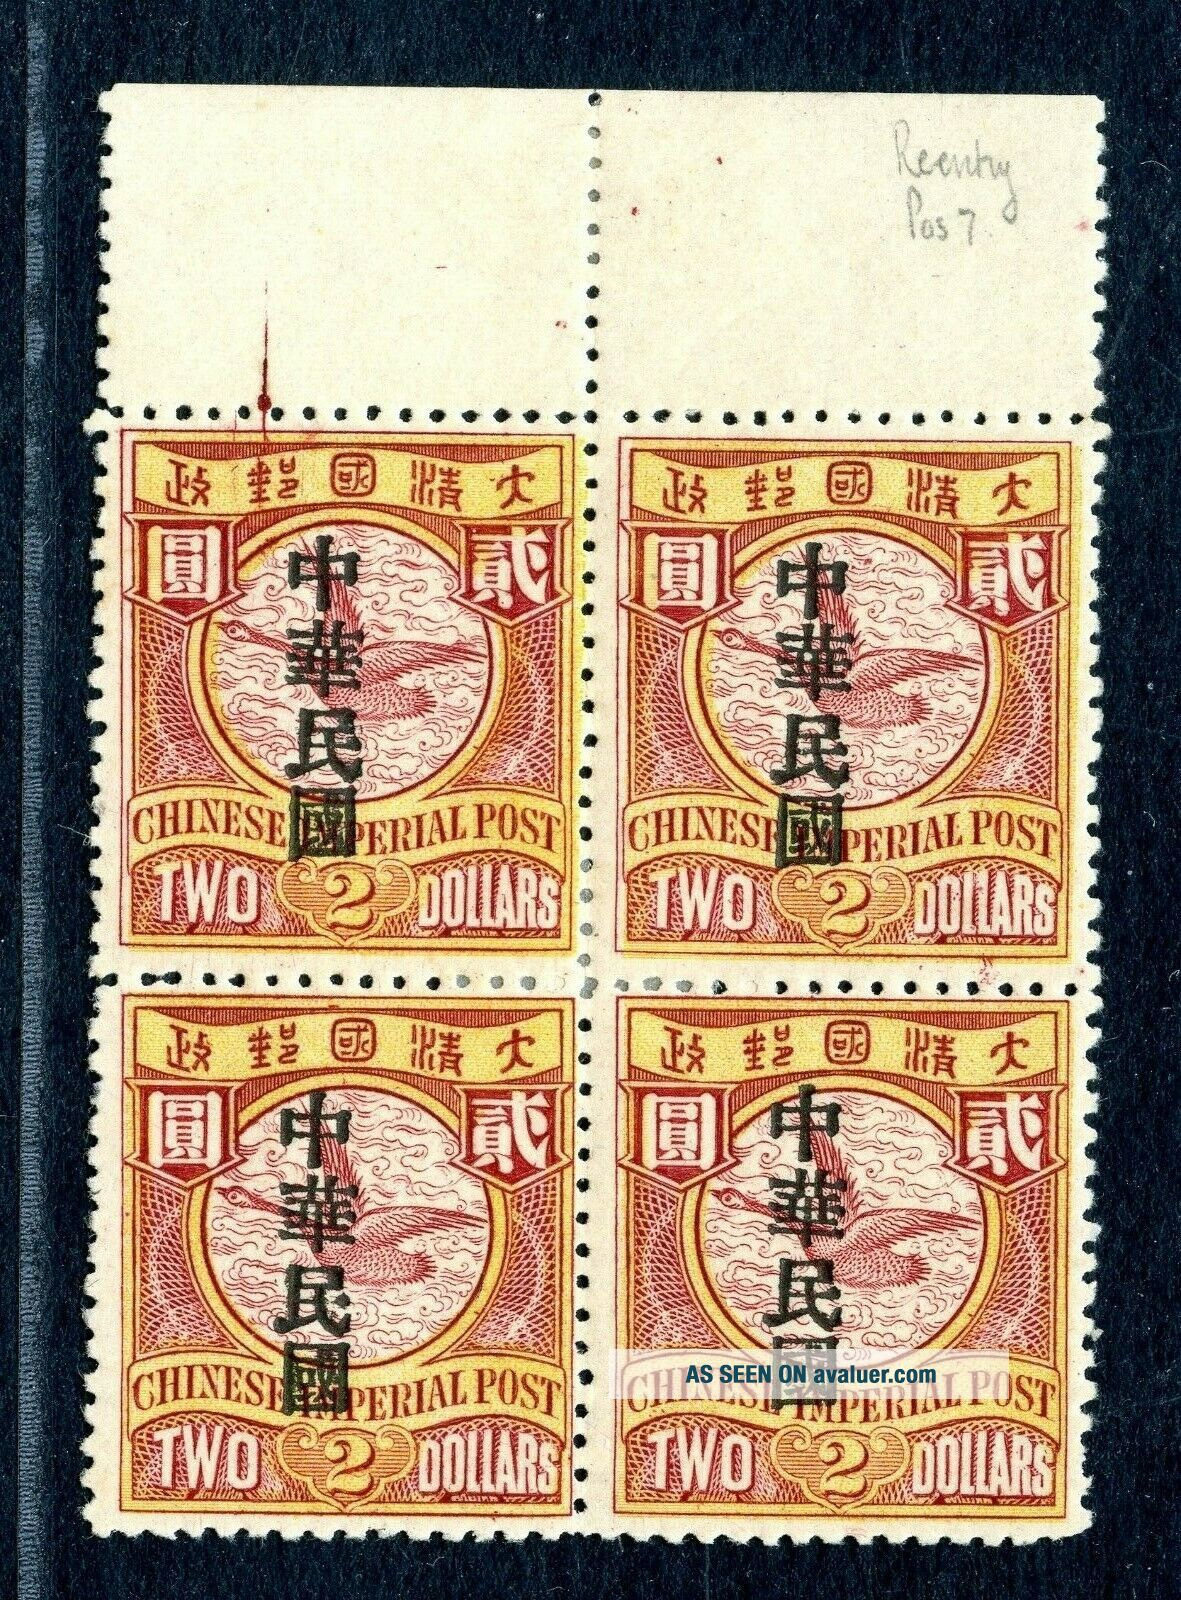 1912 ROC ovpt Flying Geese $2 block of 4 with re - entry Chan 165a RARE